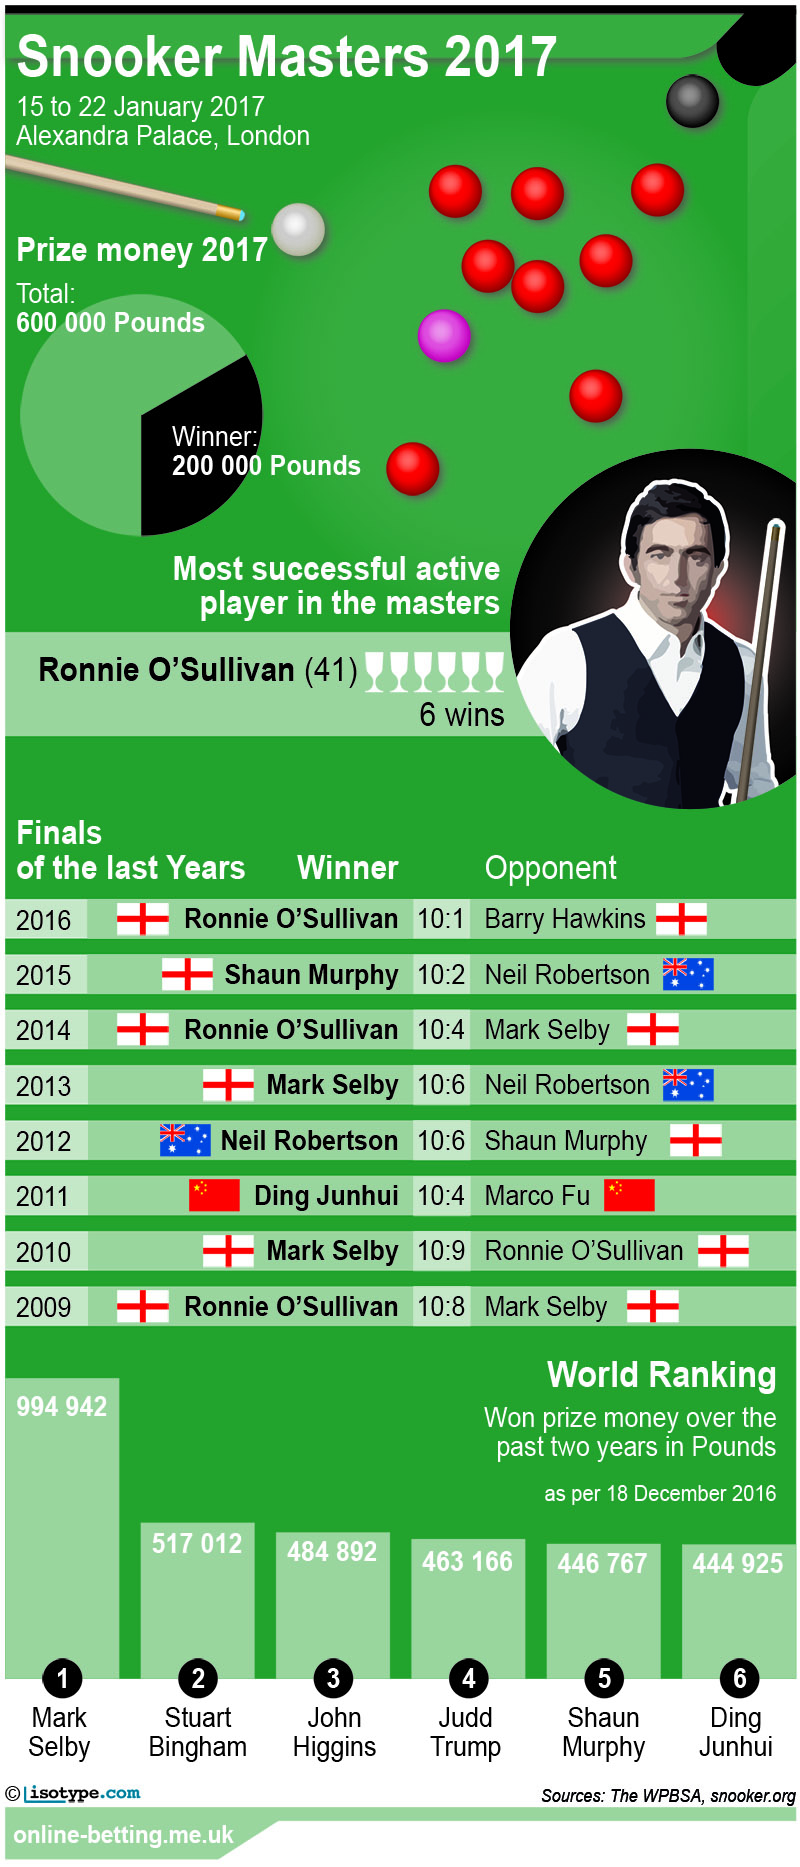 Snooker Masters 2017 Infographic